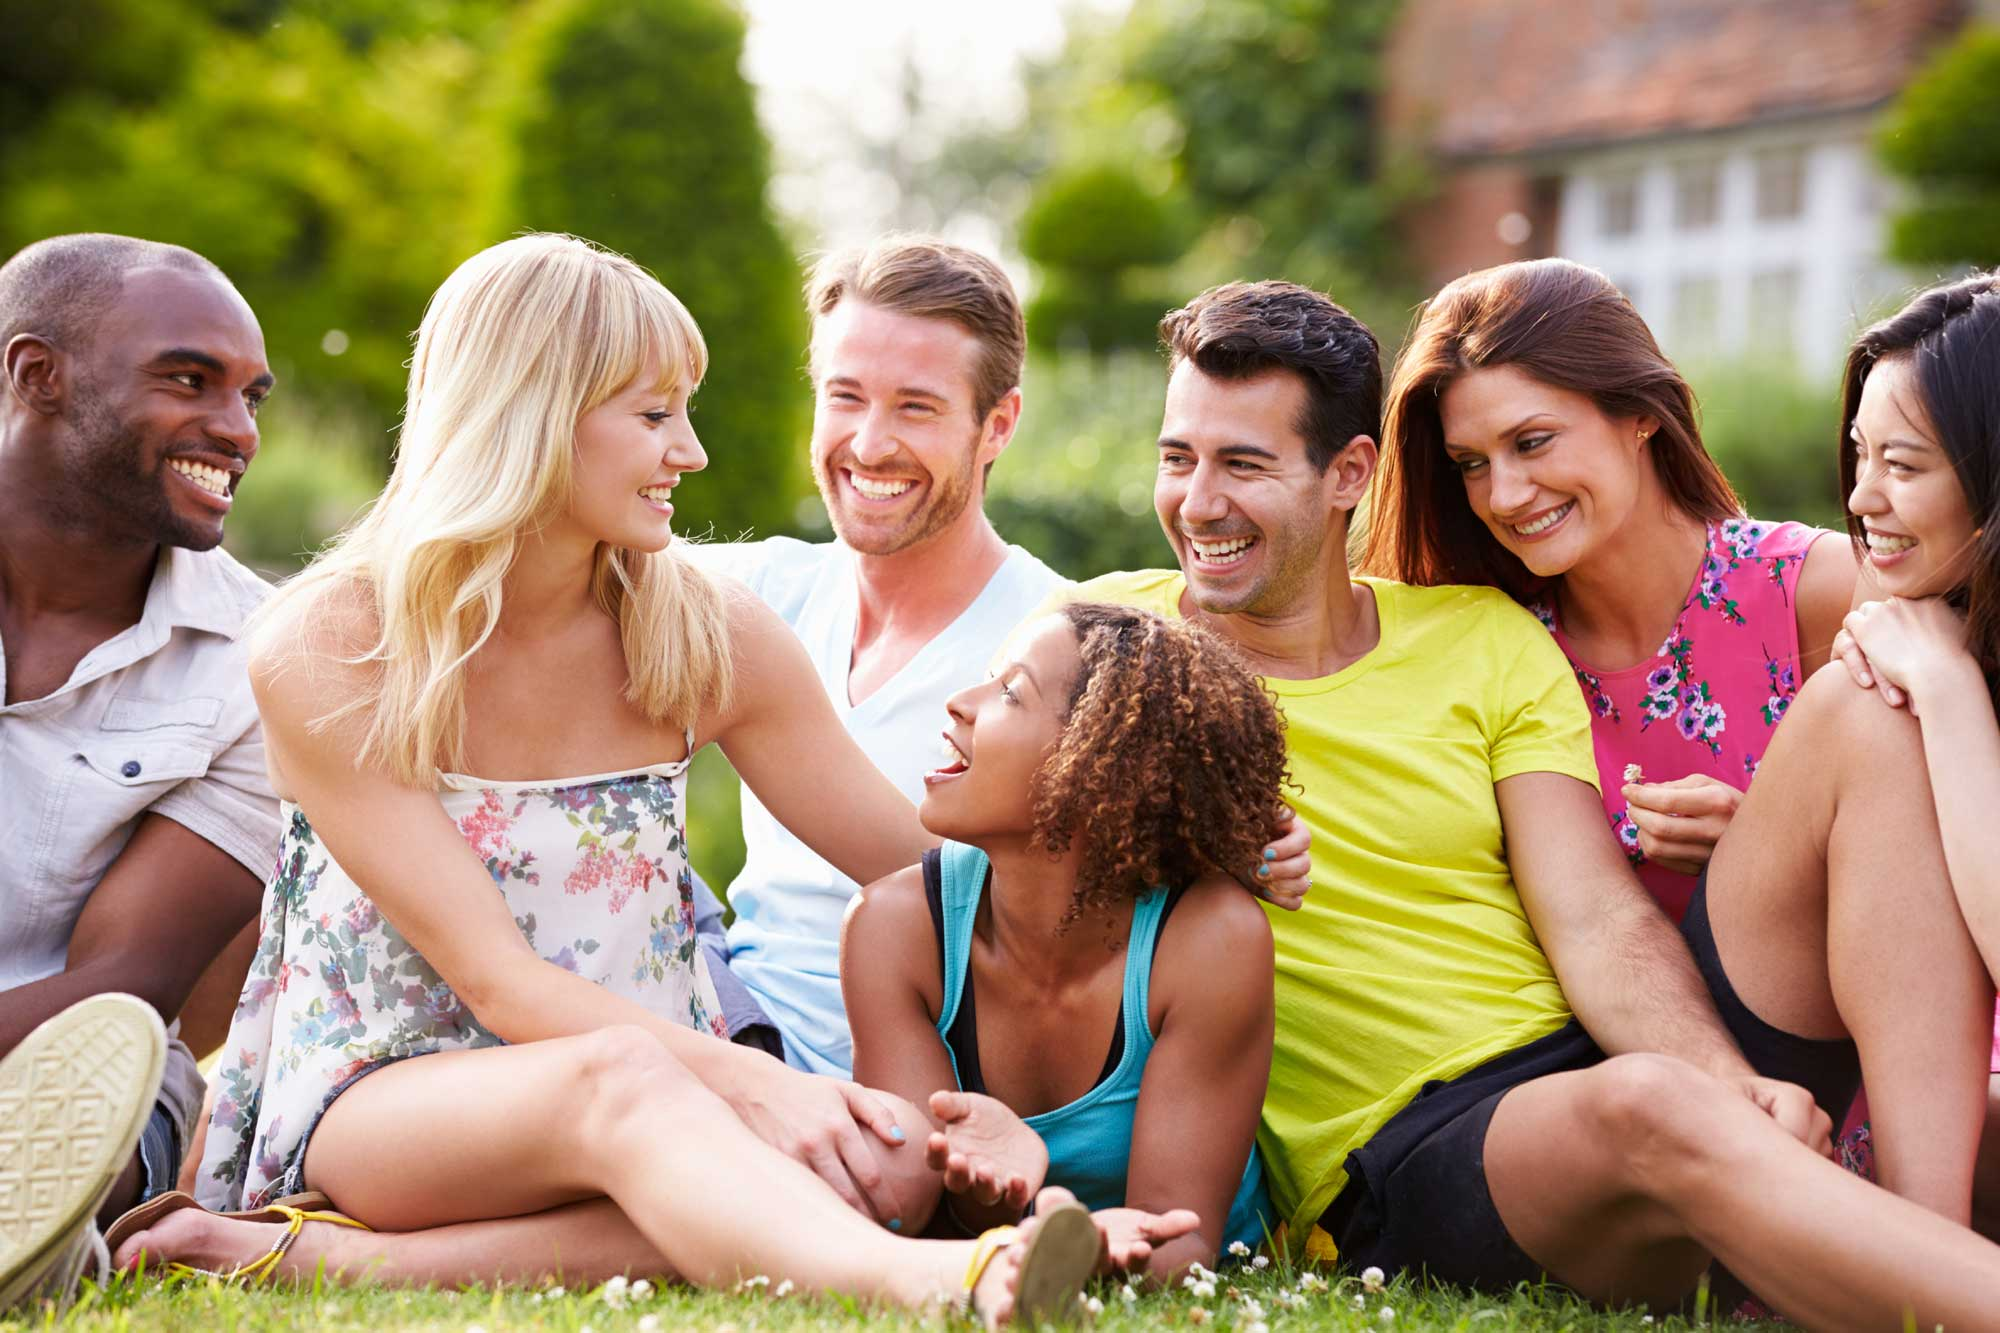 Dating with Herpes and HPV